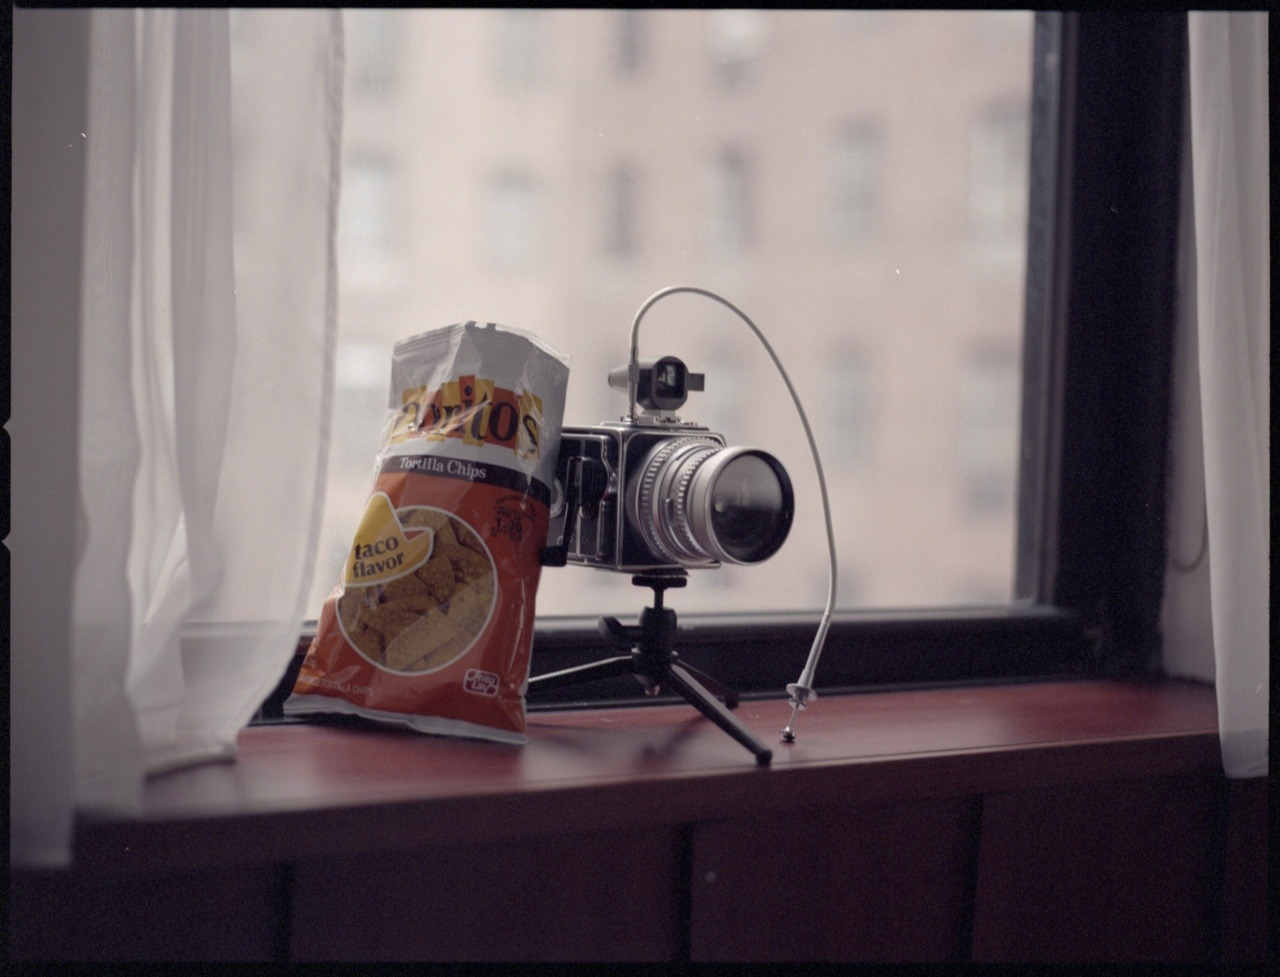 Still Life With Doritos Hasselblad 500C/M (A16 back) Zeiss Sonnar 150mm f/4 Fuji Pro 800Z Epson V500